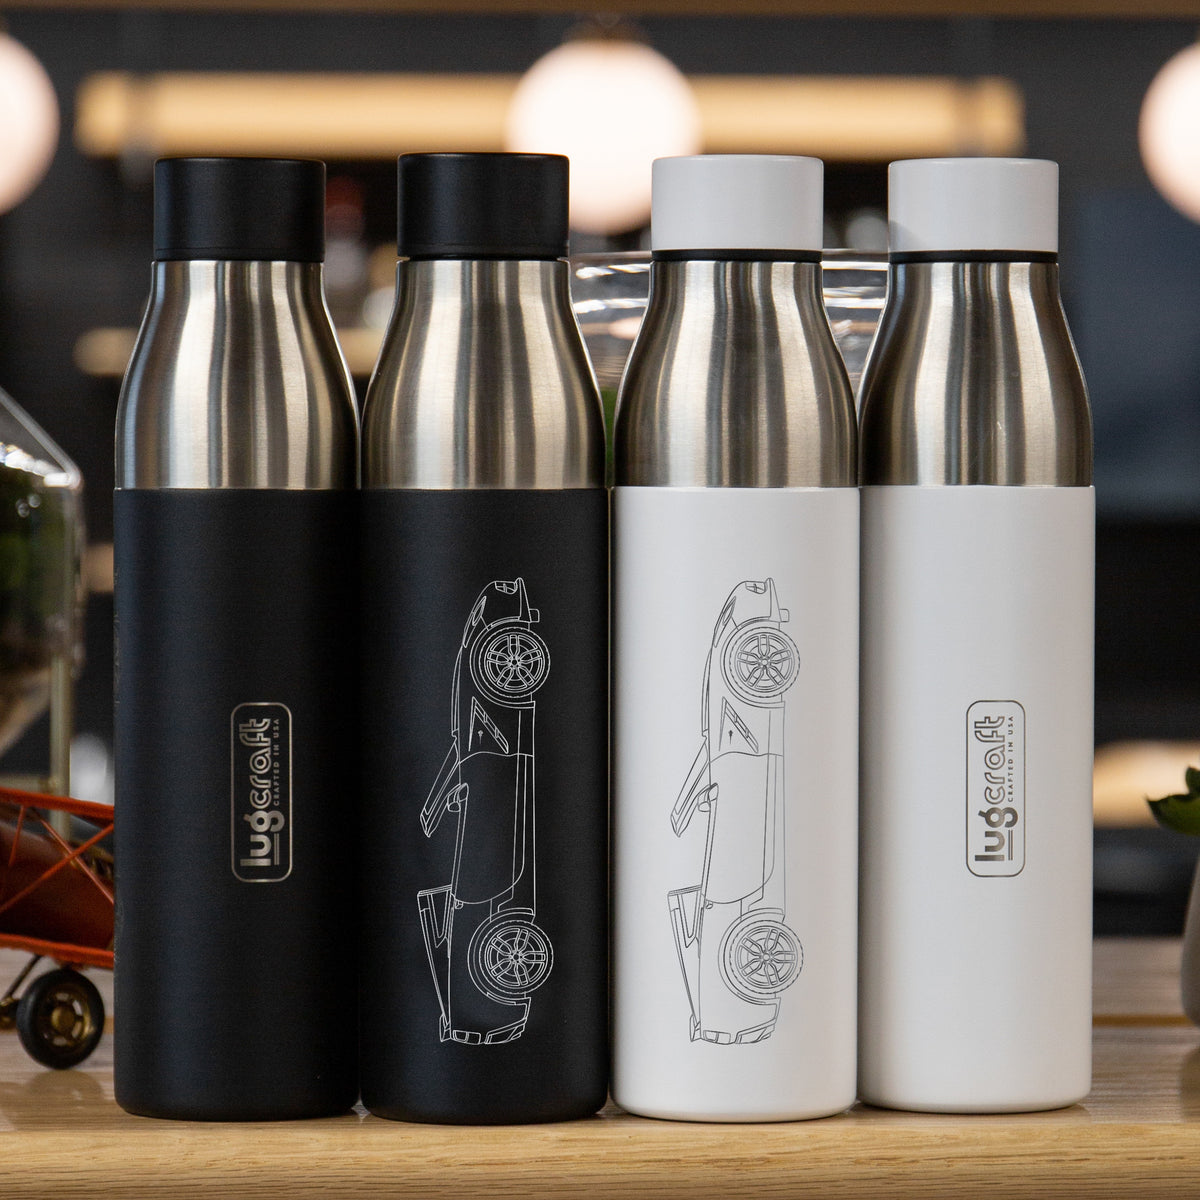 Chevy Corvette C7 Stingray Insulated Stainless Steel Water Bottle - 21 oz